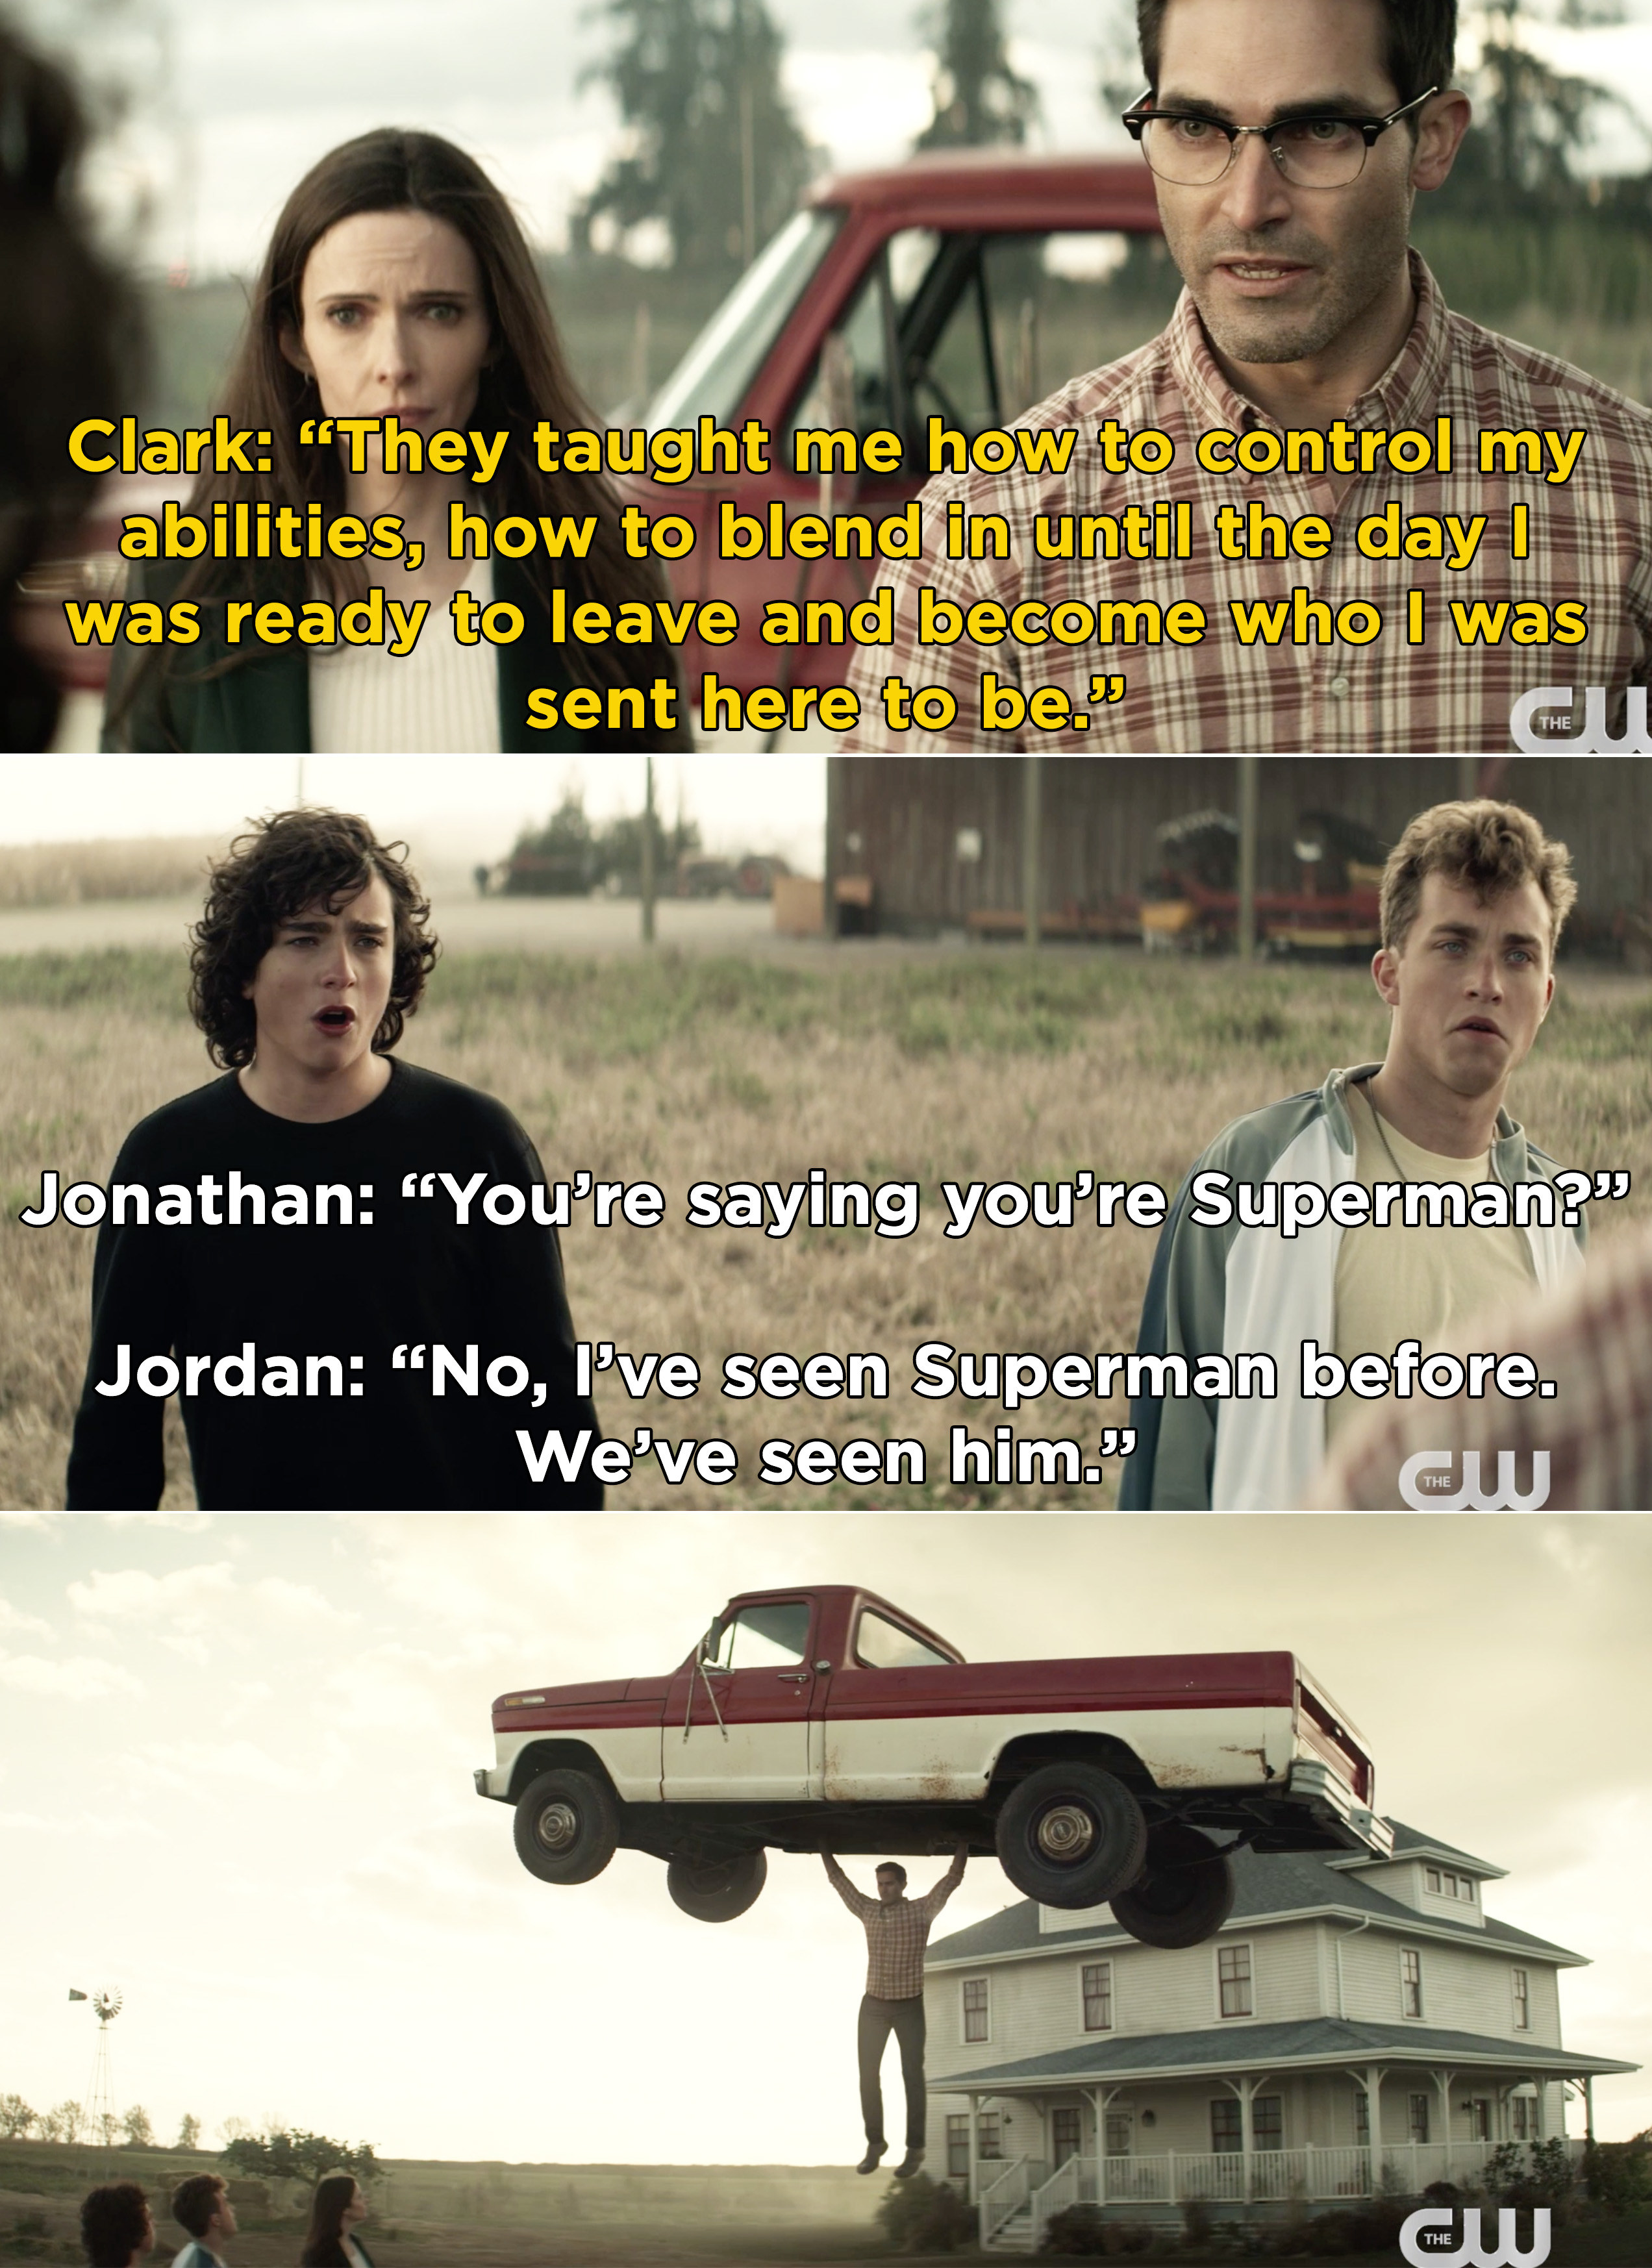 Clark telling Jordan and Jonathan that he was sent to Earth and learned to control his powers, and then lifting a truck after they don't believe that he's Superman